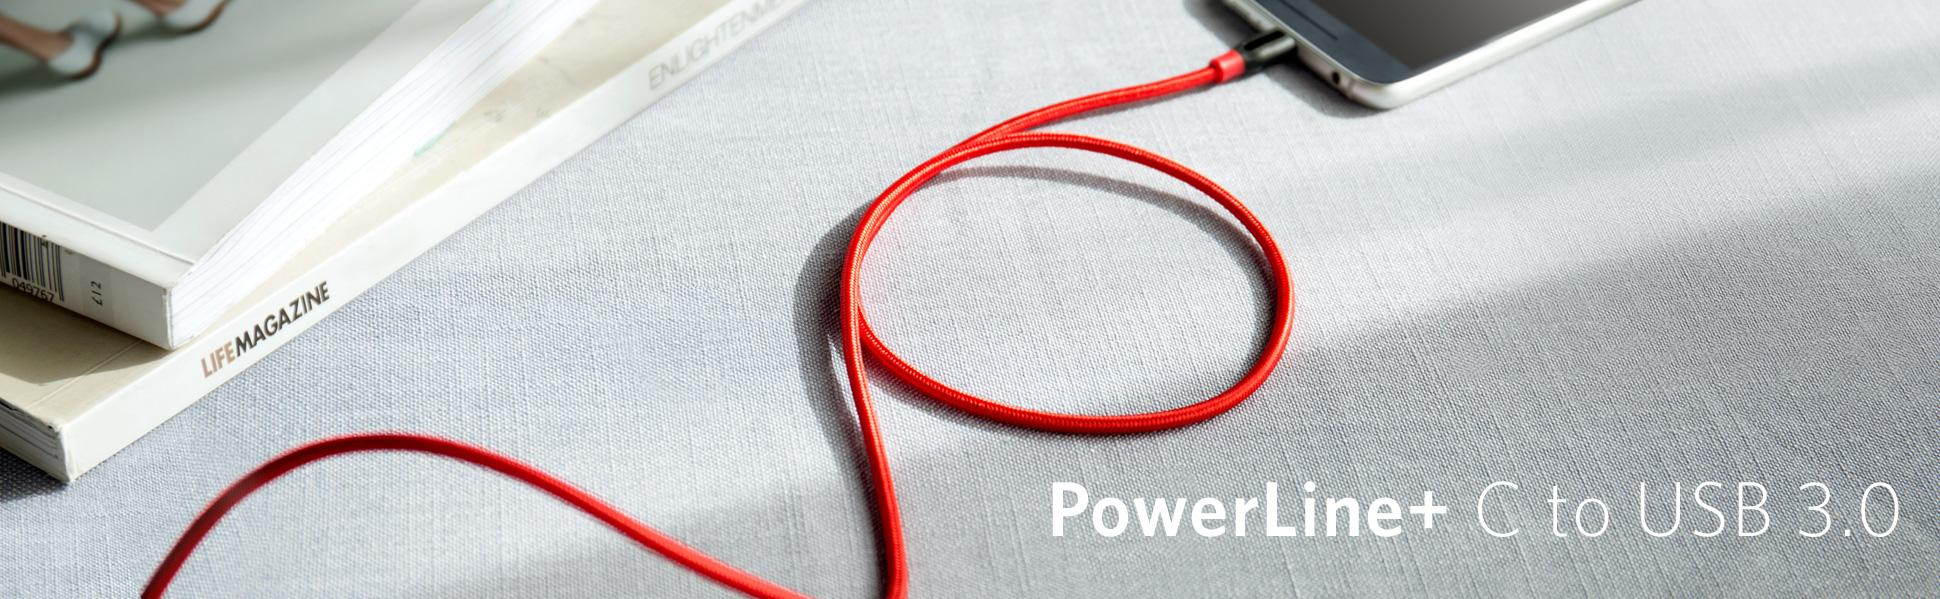 Anker Powerline Usb C To 30 Cable 3ft Red Price In Pakistan White A8163021 From The Manufacturer